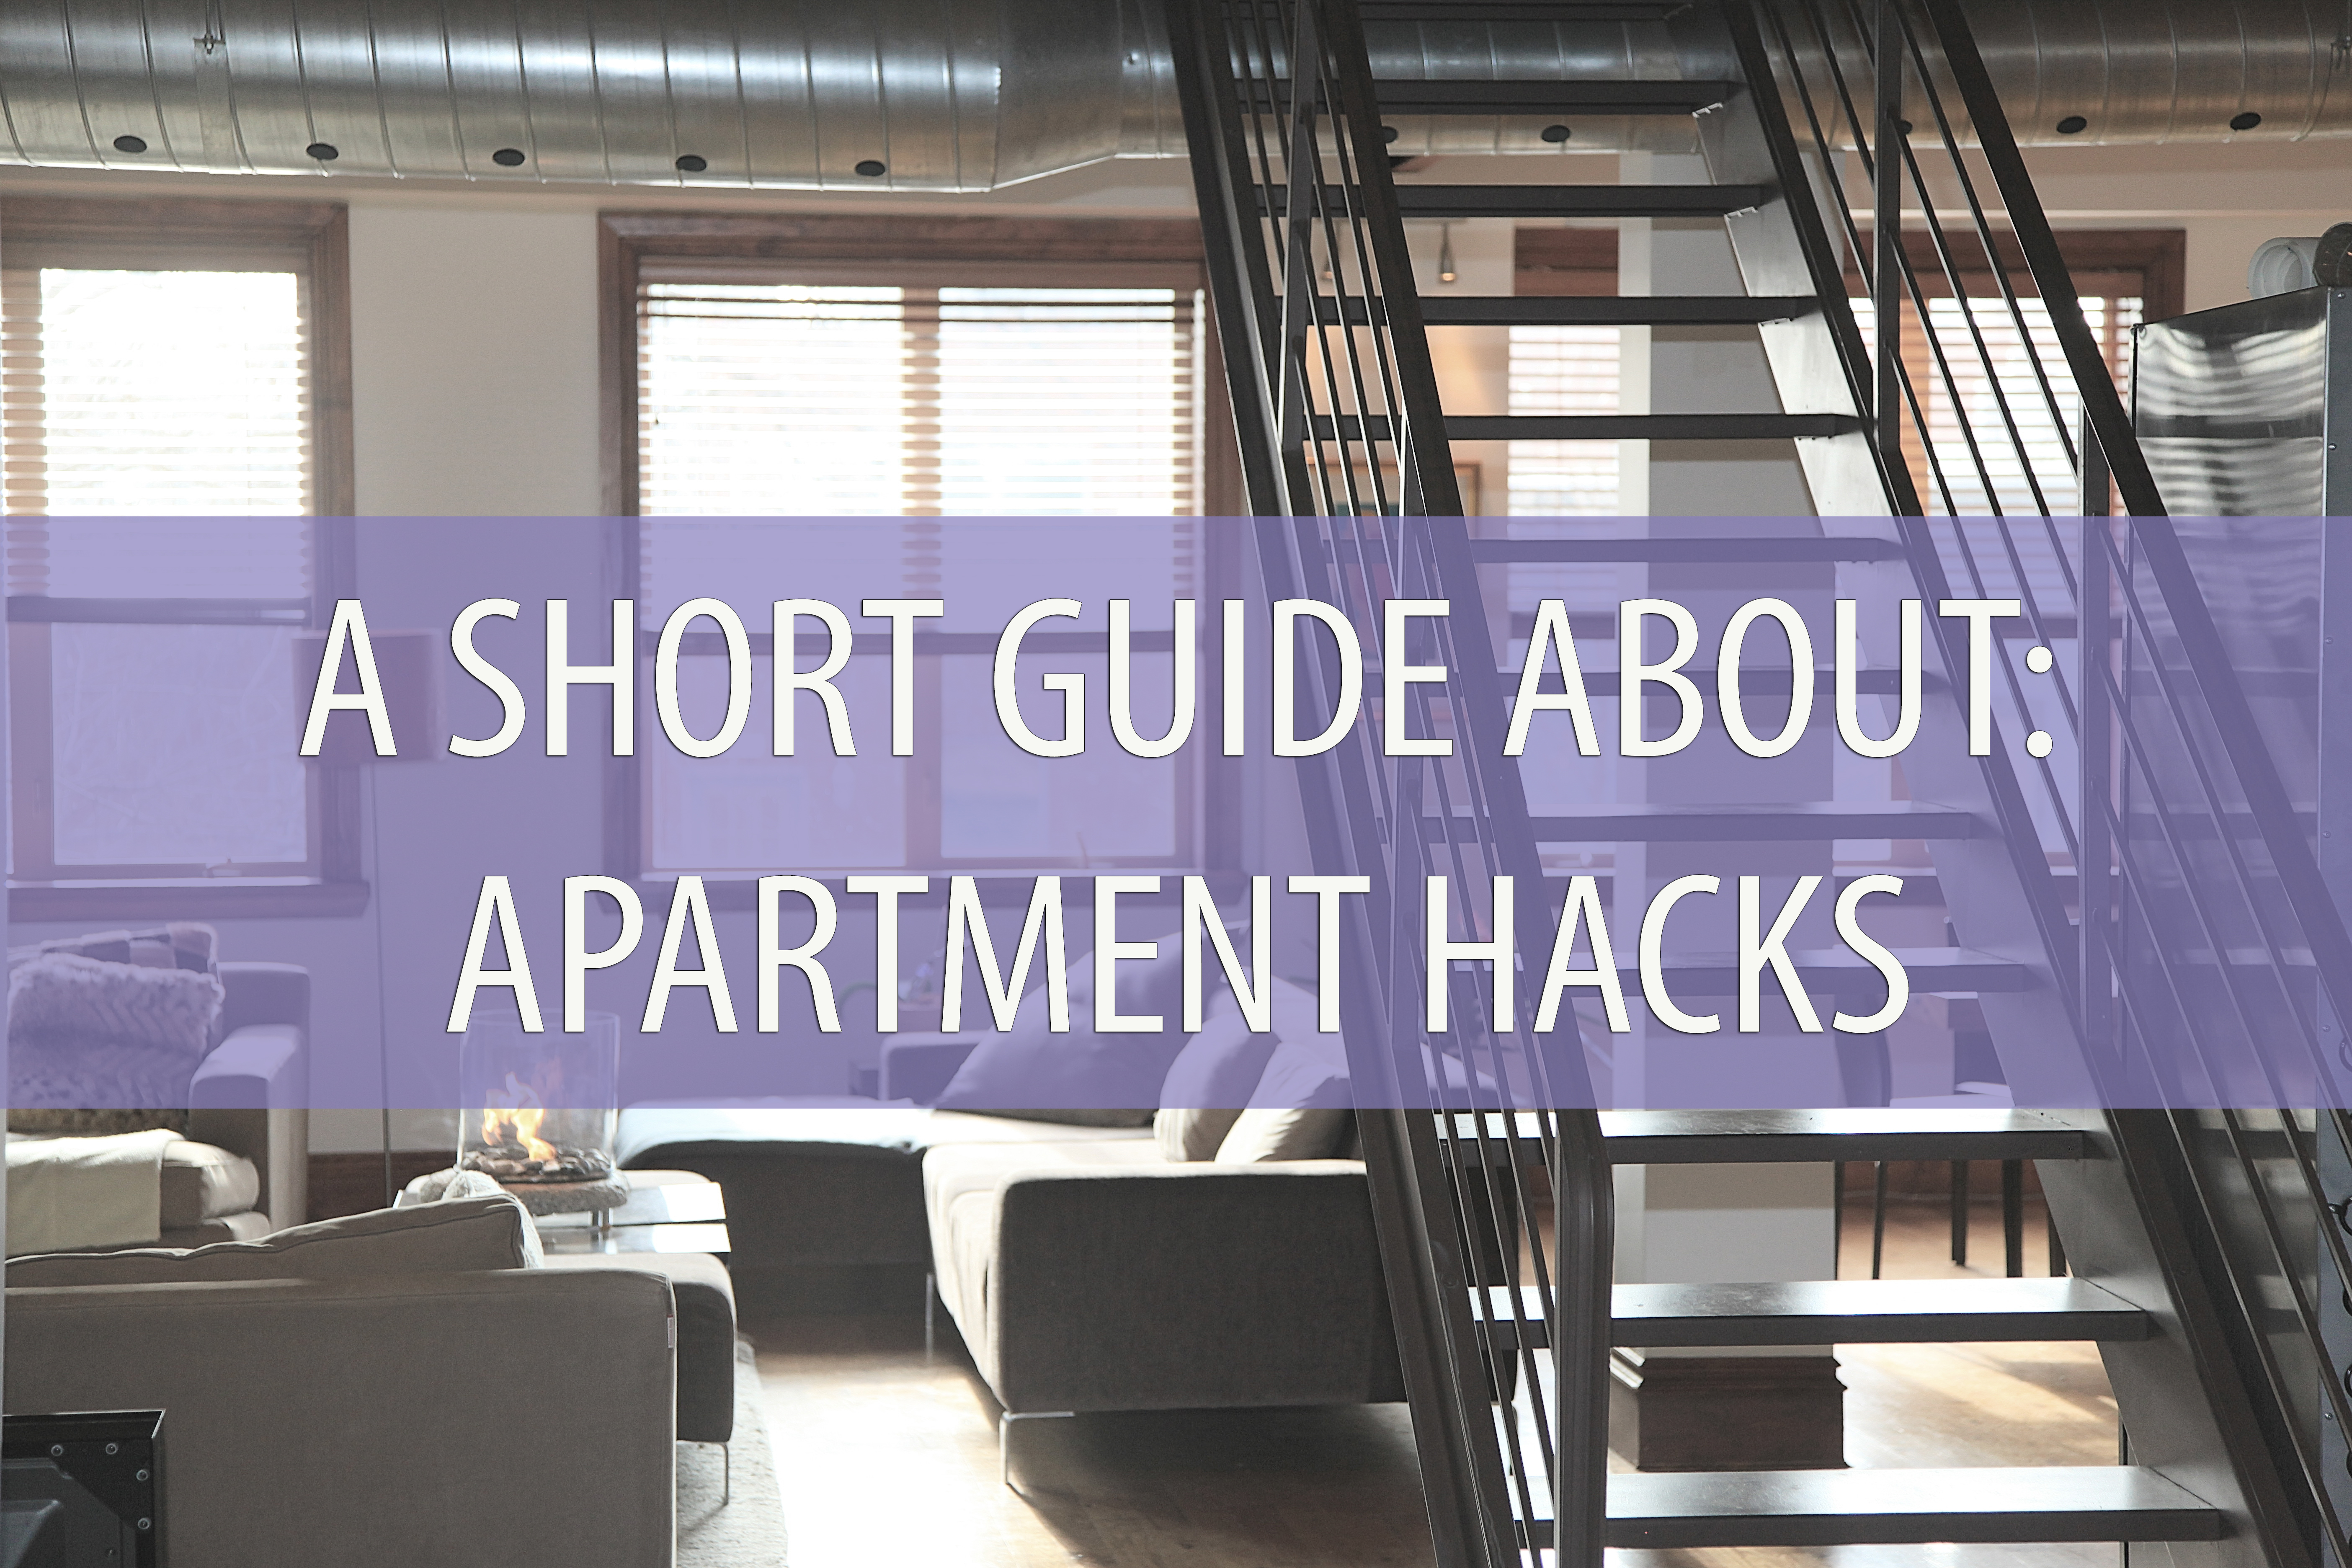 Apartment Hacks To Make Your Living Situation A Little